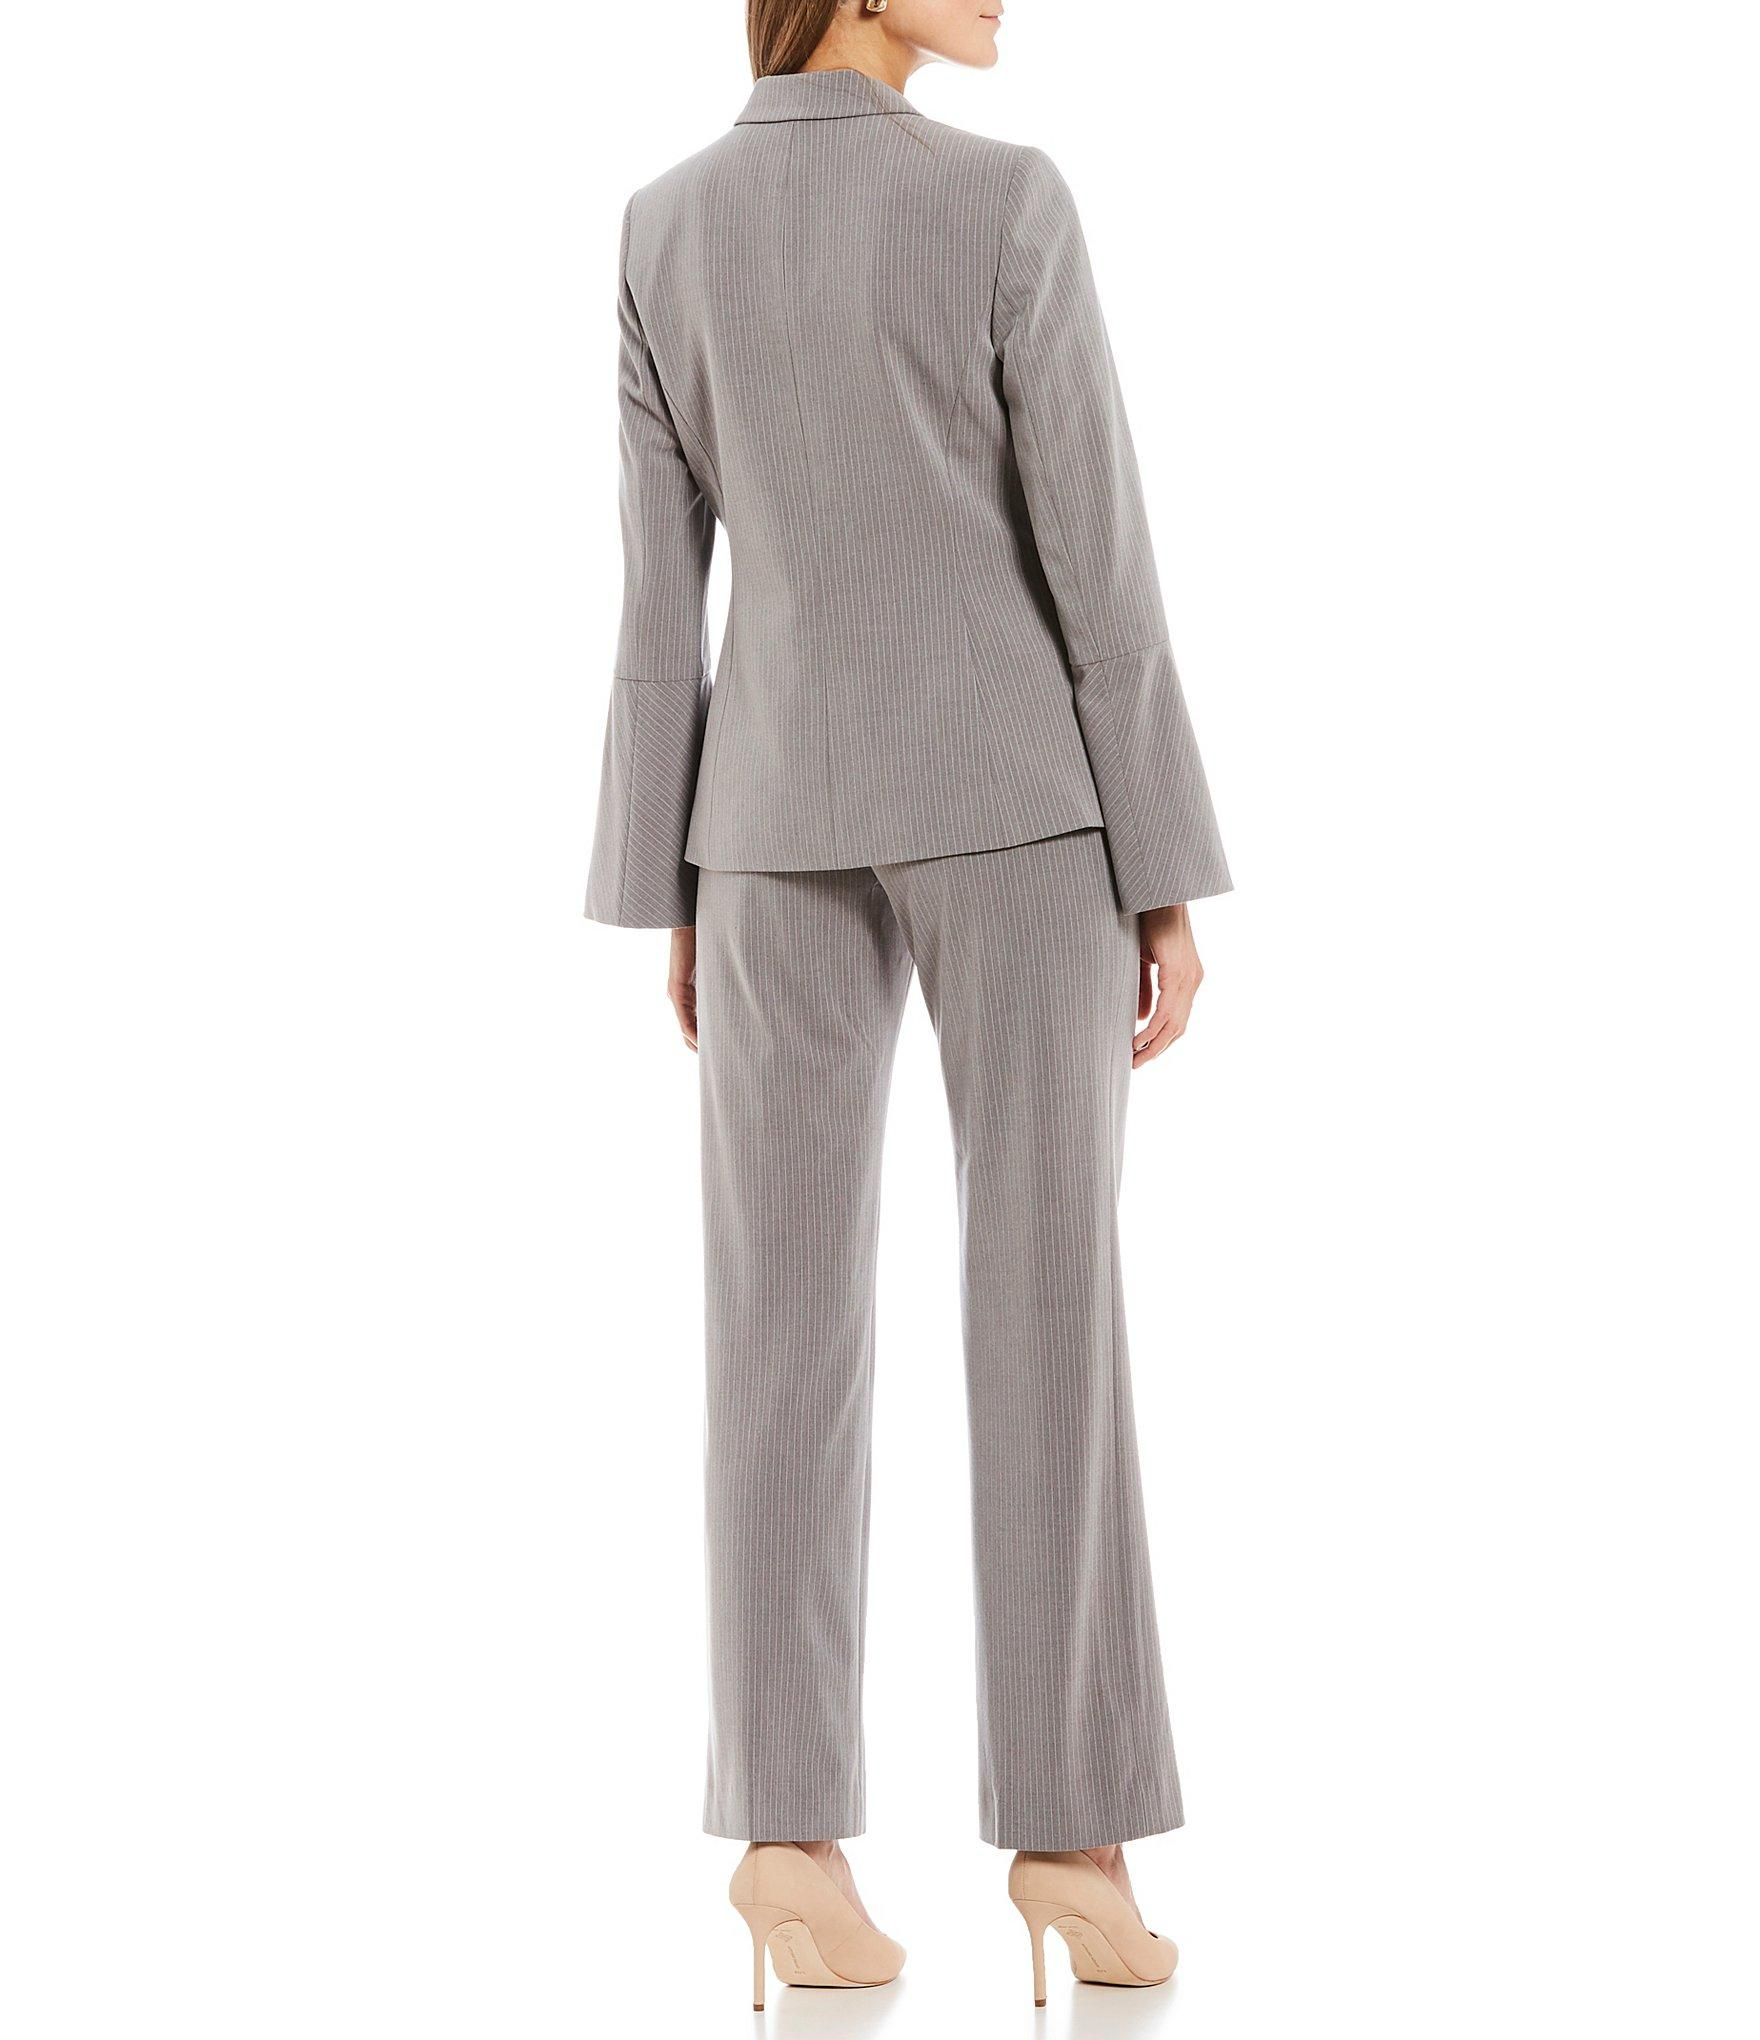 a9a3eadc70 Lyst - Tahari One Button Pinstripe Bell Sleeve Ankle Pantsuit in Gray